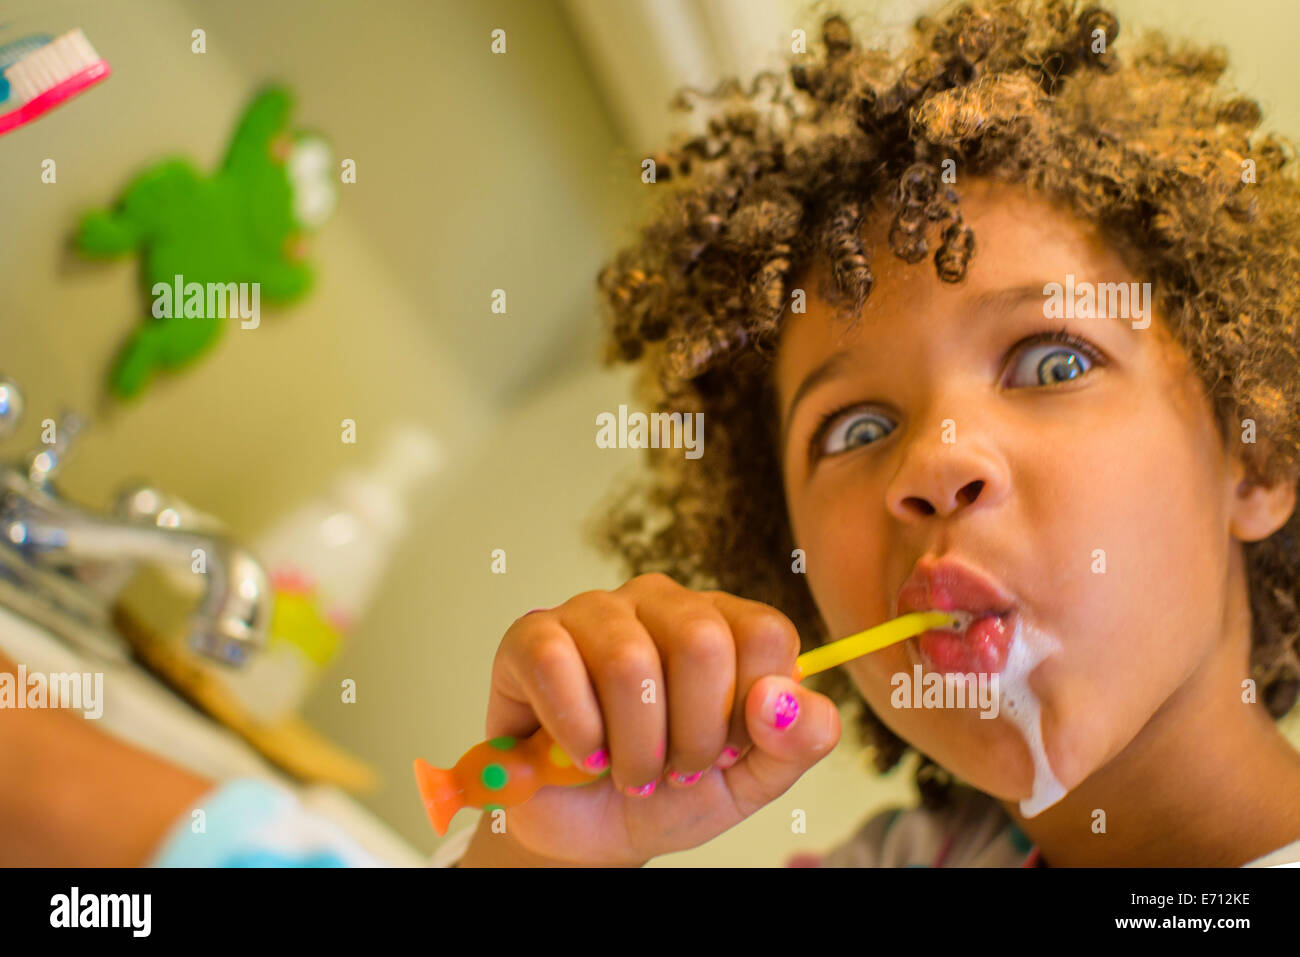 Portrait of girl pulling face whilst brushing teeth - Stock Image